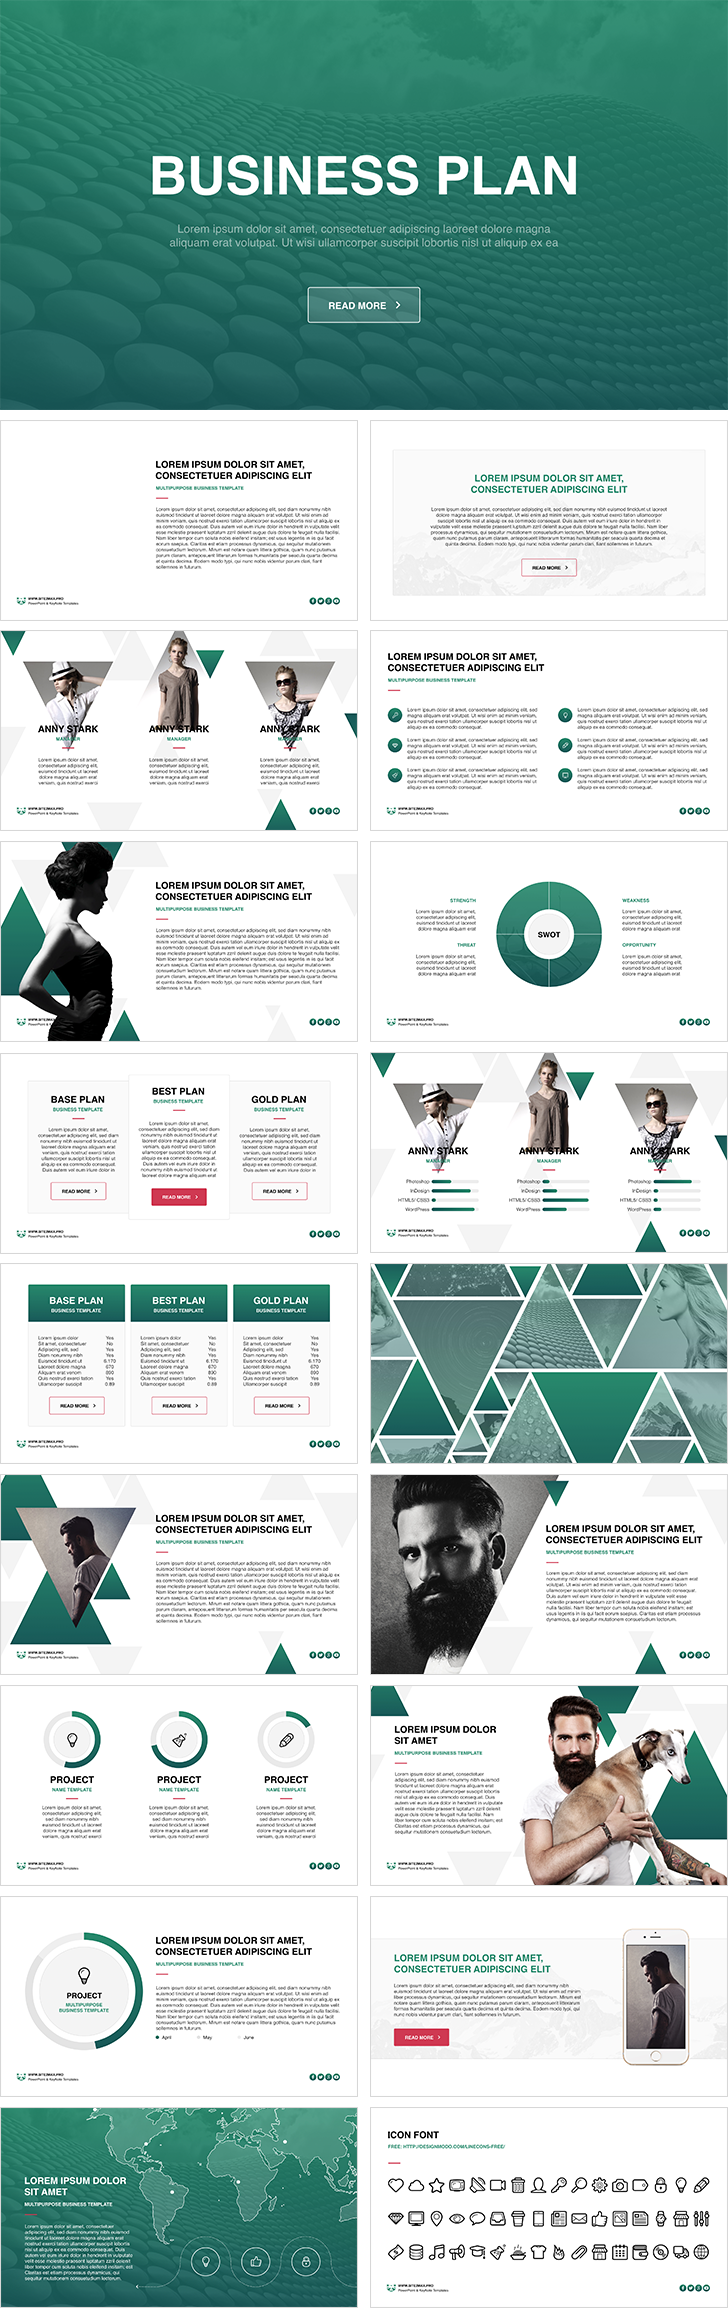 Business plan free powerpoint template download free business plan free powerpoint template toneelgroepblik Choice Image